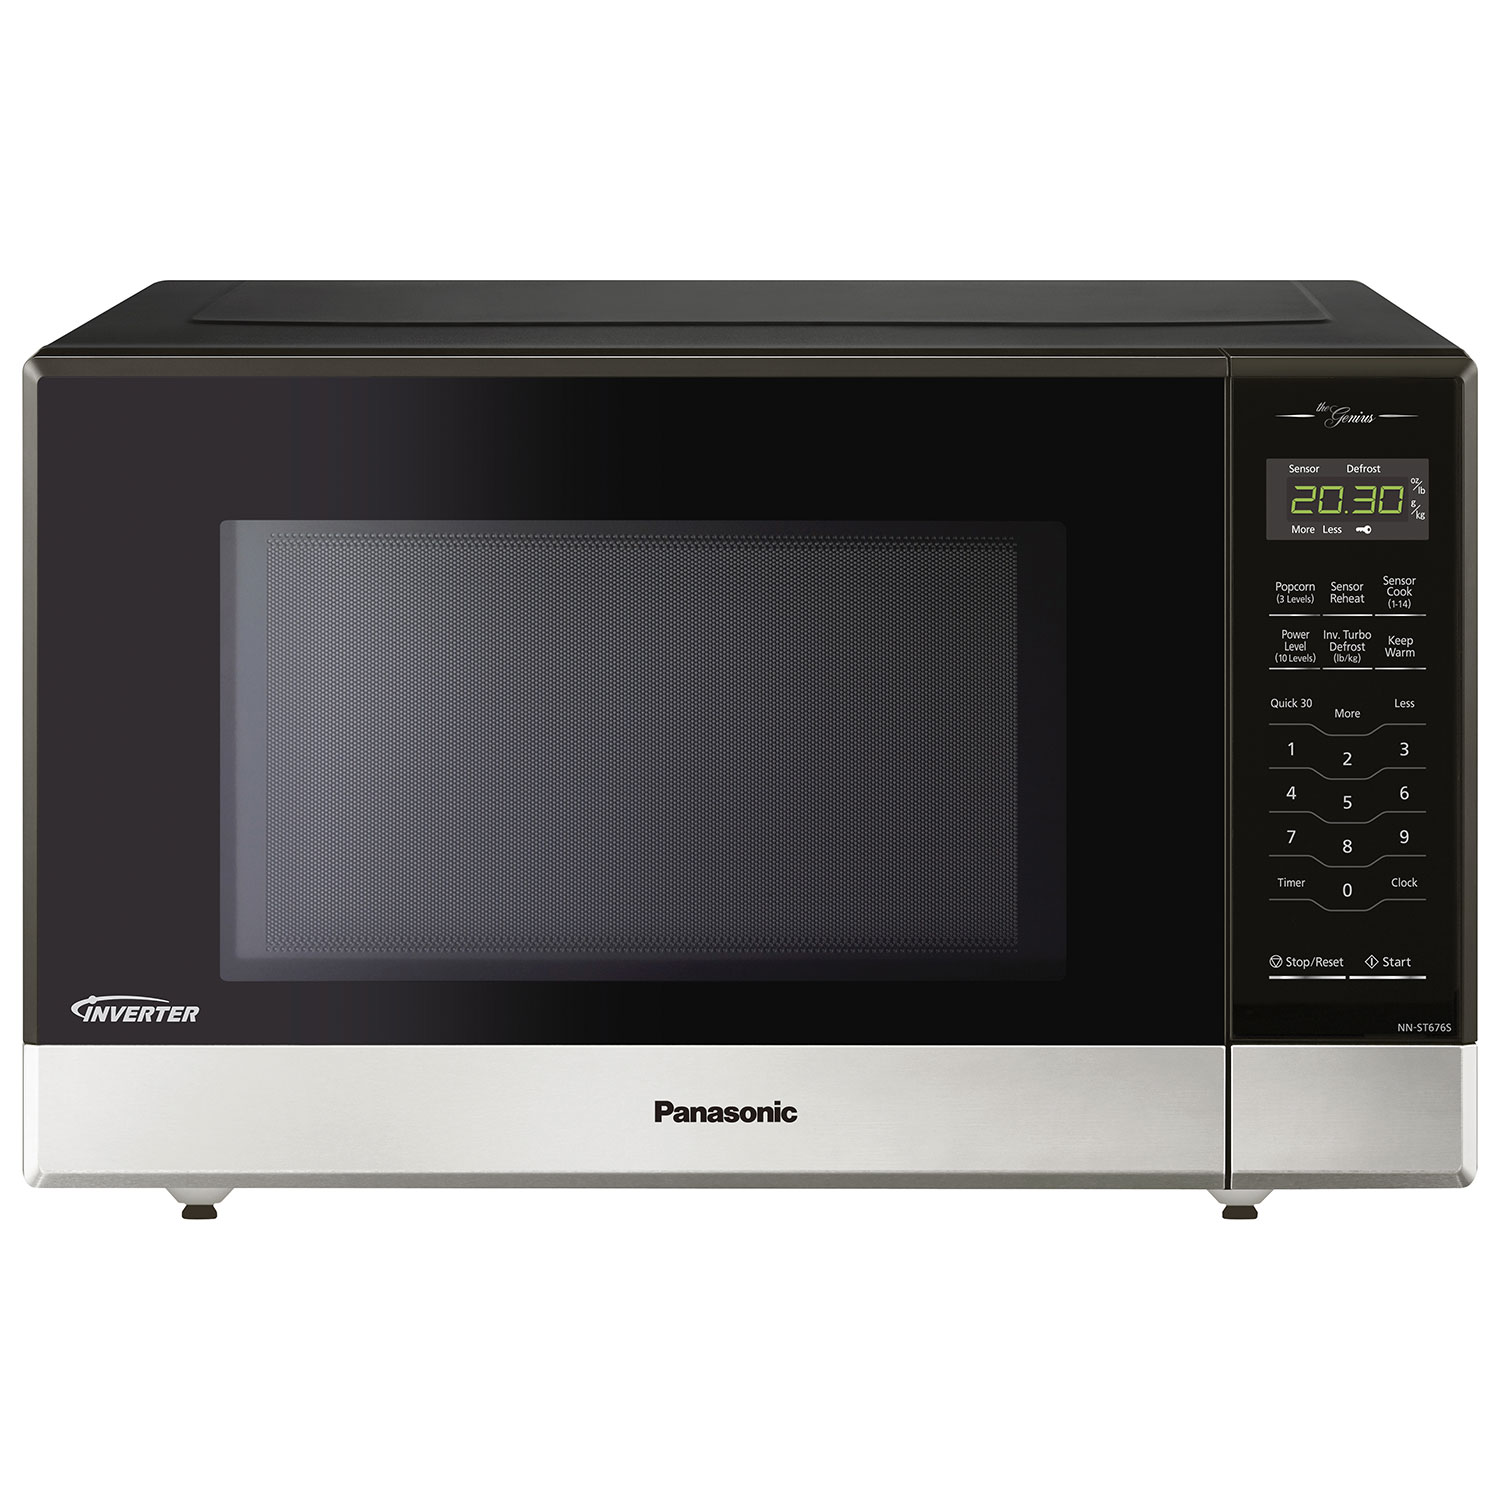 Panasonic microwave oven - your great assistant in the kitchen